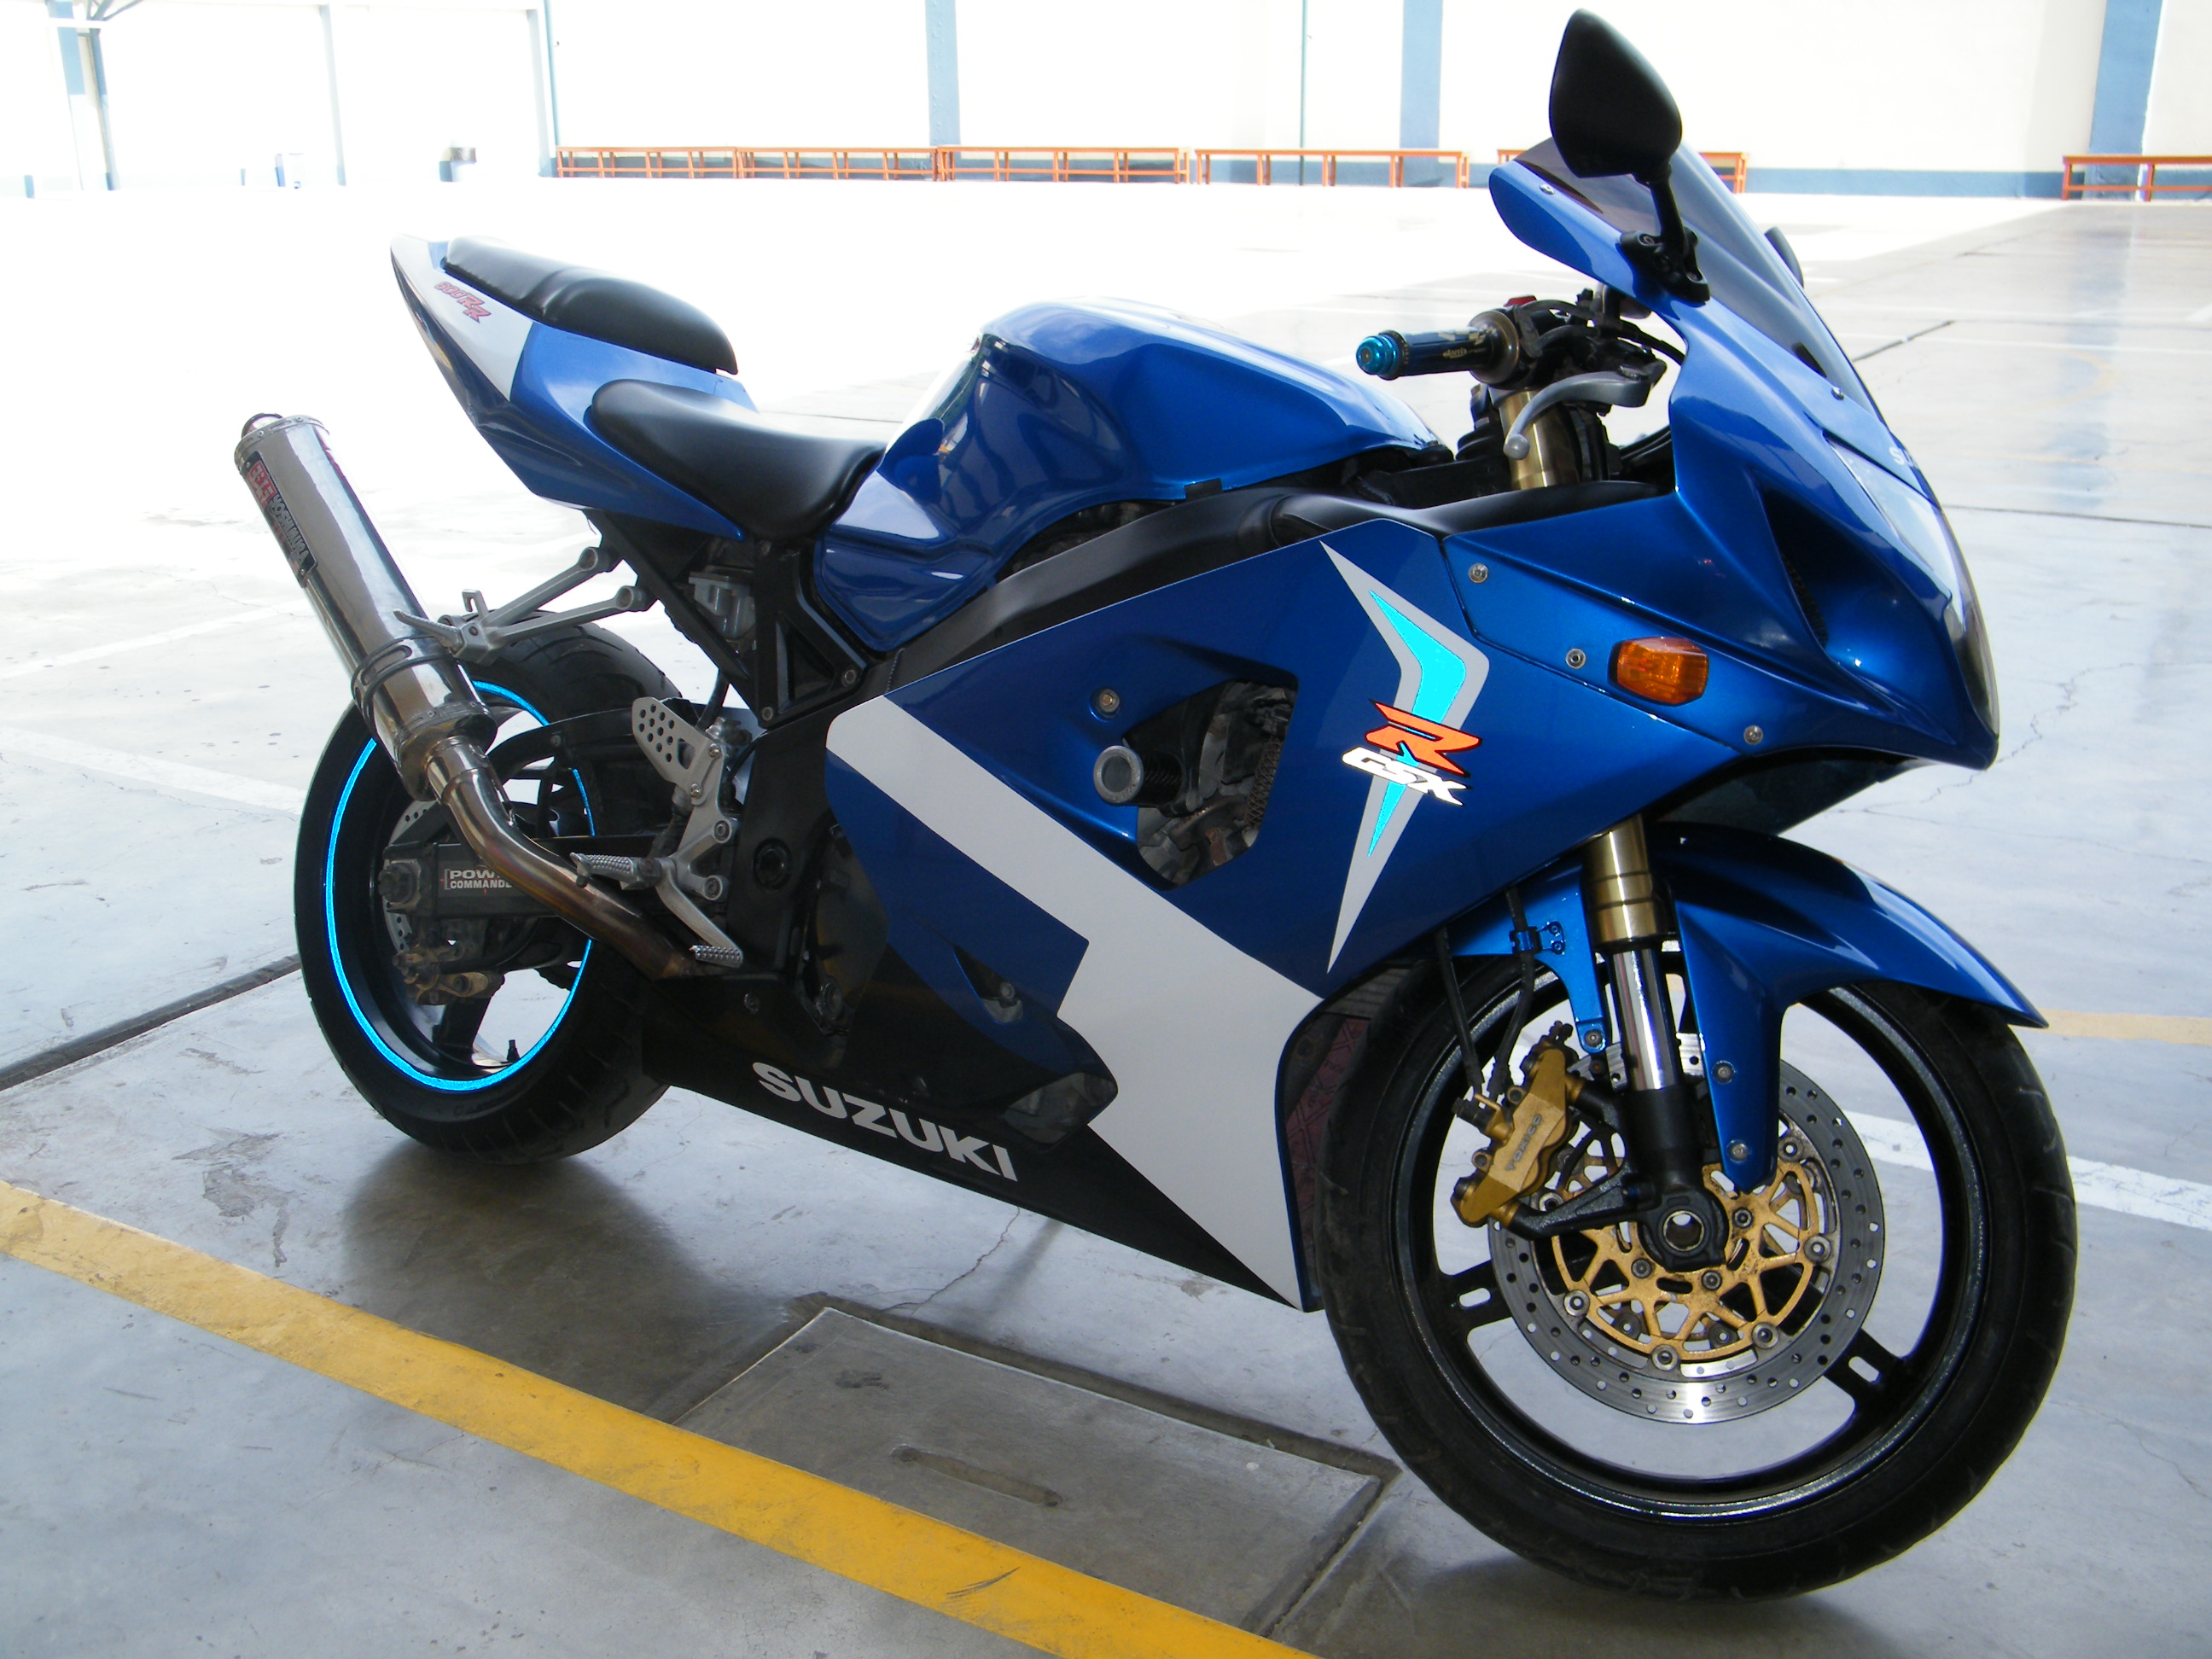 2005 suzuki gsx r 600 pics specs and information. Black Bedroom Furniture Sets. Home Design Ideas